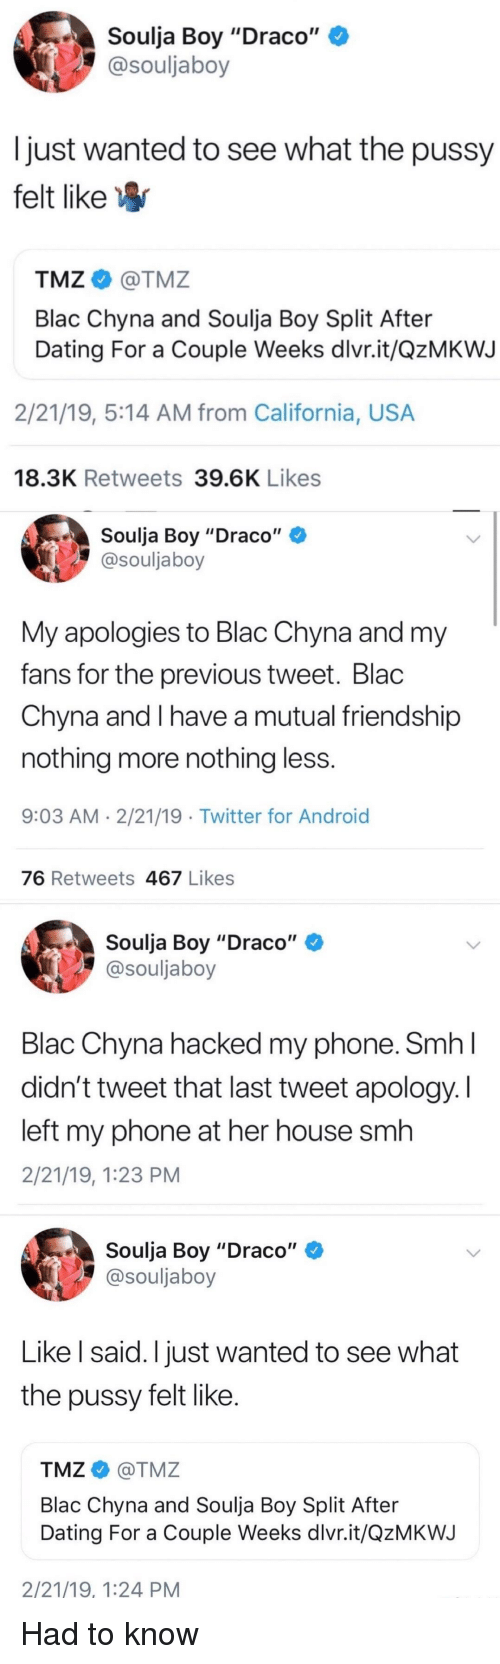 """Android, Blac Chyna, and Blackpeopletwitter: Soulja Boy """"Draco""""  @souljaboy  just wanted to see what the pussy  felt likeW  TMZ@TMZ  Blac Chyna and Soulja Boy Split After  Dating For a Couple Weeks dlvr.it/QzMKWJ  2/21/19, 5:14 AM from California, USA  18.3K Retweets 39.6K Likes  Soulja Boy """"Draco""""  @souljaboy  My apologies to Blac Chyna and my  fans for the previous tweet. Blac  Chyna and I have a mutual friendship  nothing more nothing less  9:03 AM 2/21/19 .Twitter for Android  76 Retweets 467 Likes  Soulja Boy """"Draco""""  @souljaboy  Blac Chyna hacked my phone. SmhI  didn't tweet that last tweet apology. I  left my phone at her house smh  2/21/19, 1:23 PM  Soulja Boy """"Draco""""  @souljaboy  Like l said. I just wanted to see what  the pussy felt like  TMZ@TMZ  Blac Chyna and Soulja Boy Split After  Dating For a Couple Weeks dlvr.it/QzMKWJ  2/21/19, 1:24 PM"""